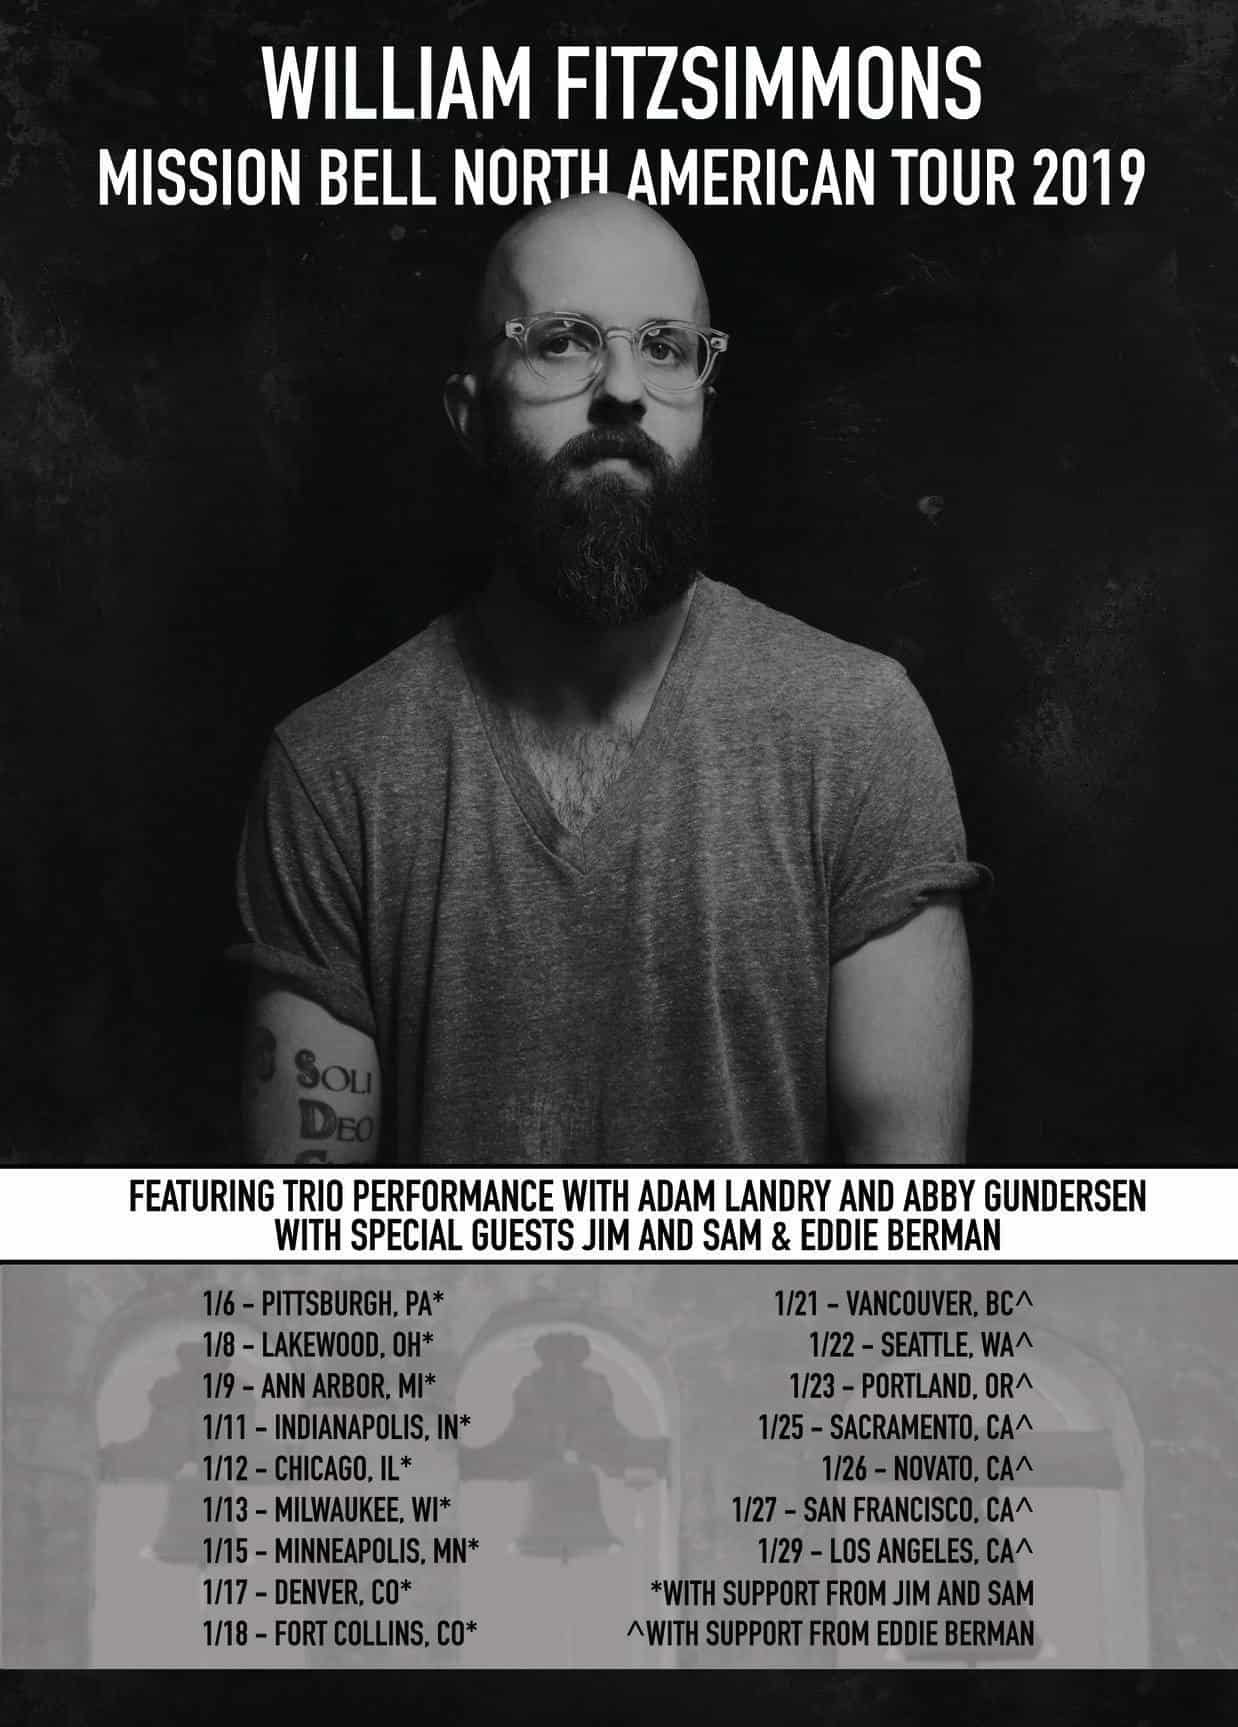 William Fitzsimmons Mission Bell Tour